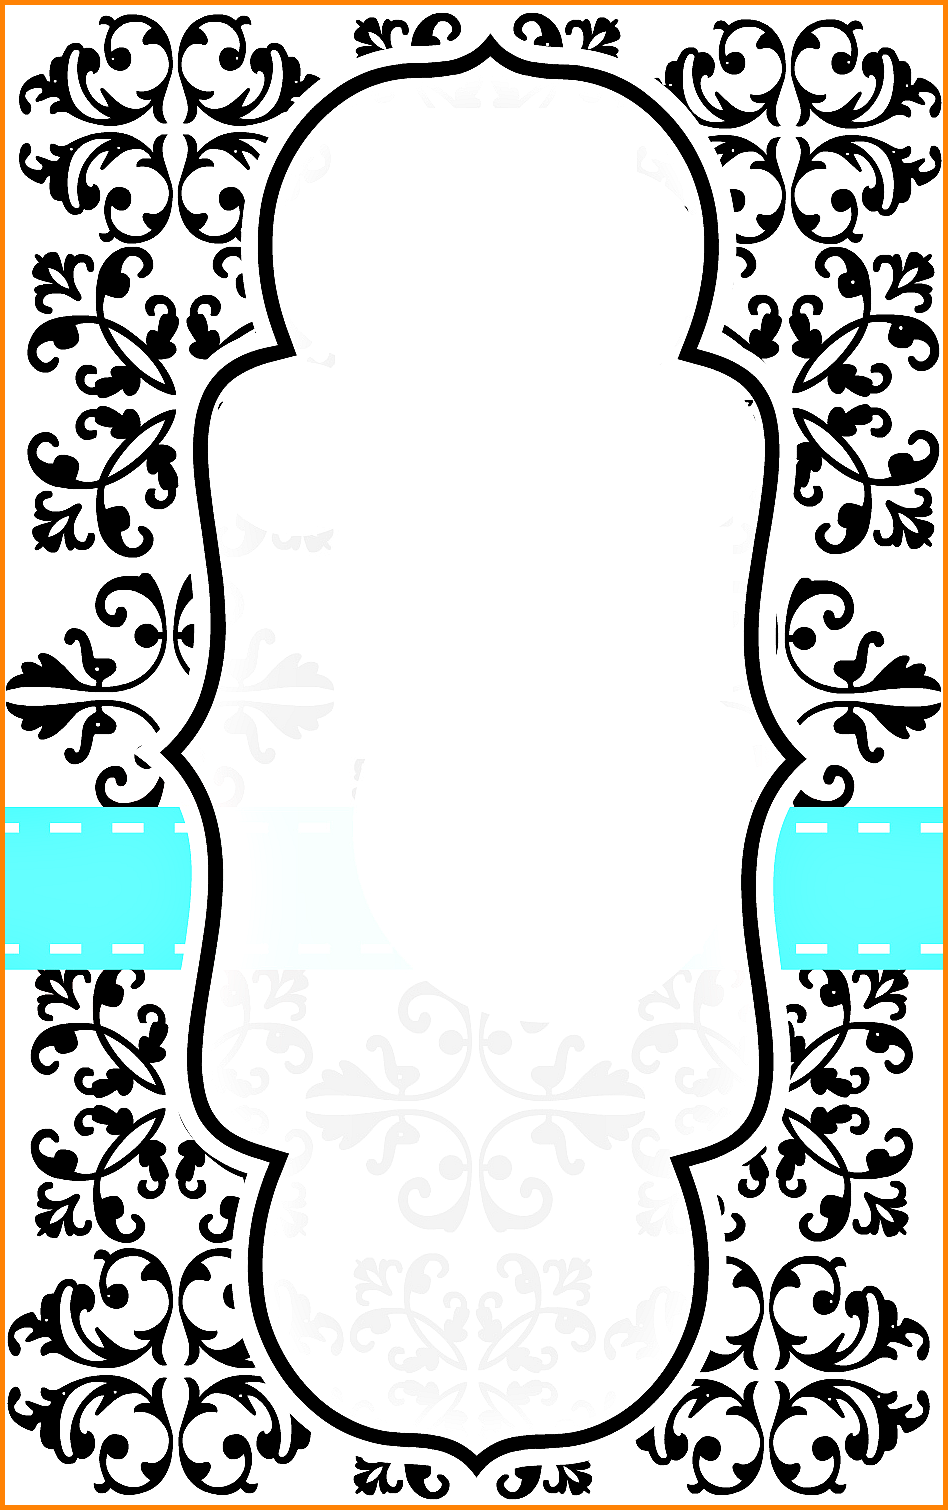 Blank invitation cards templates png 4 png image blank invitation cards templates png 4 stopboris Choice Image